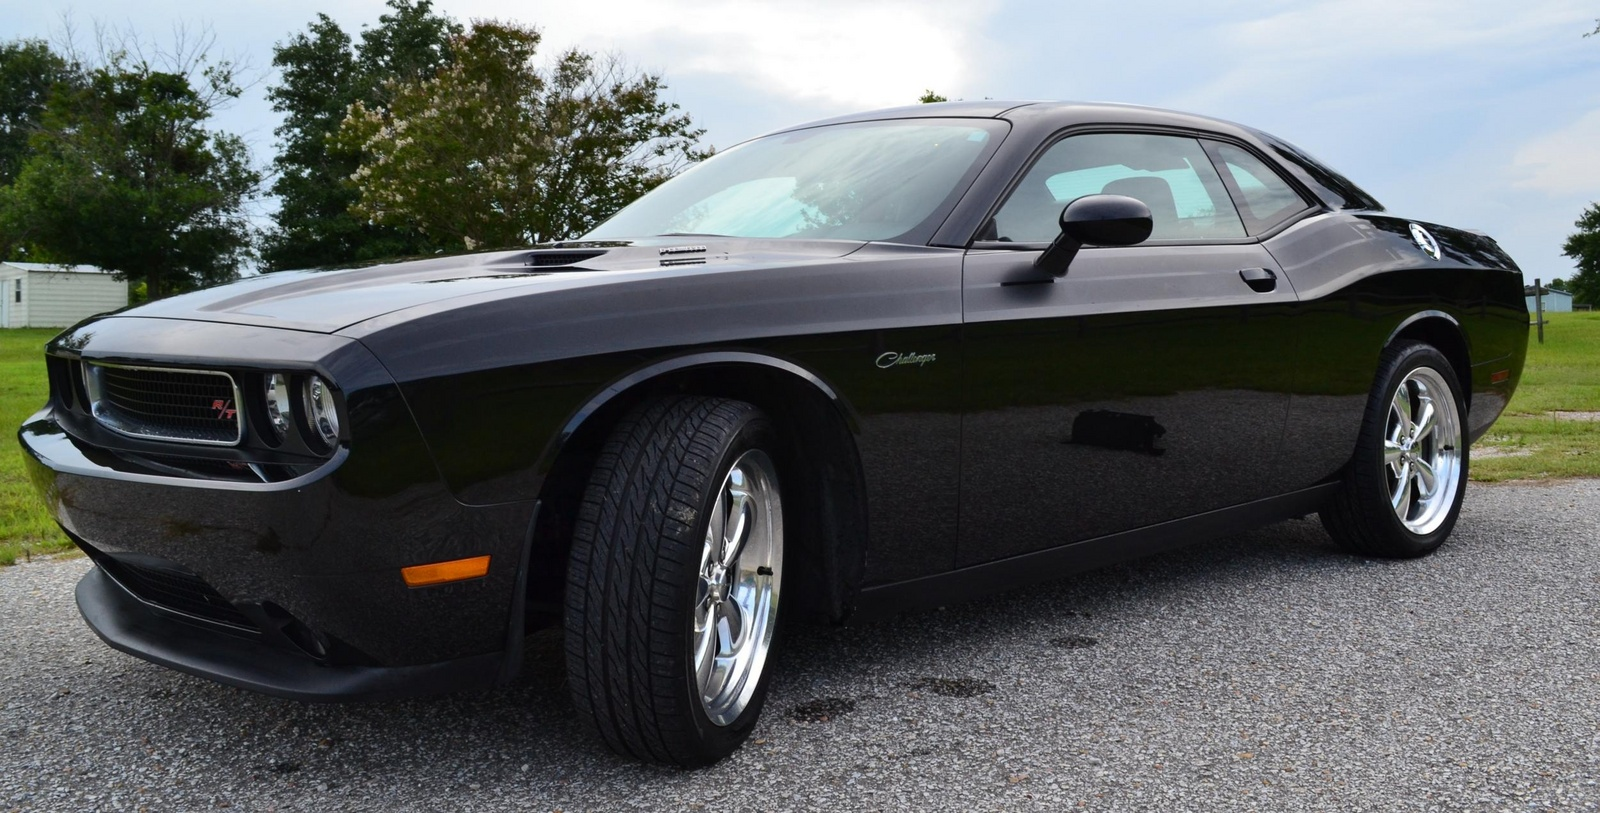 2011 dodge challenger pictures cargurus. Cars Review. Best American Auto & Cars Review